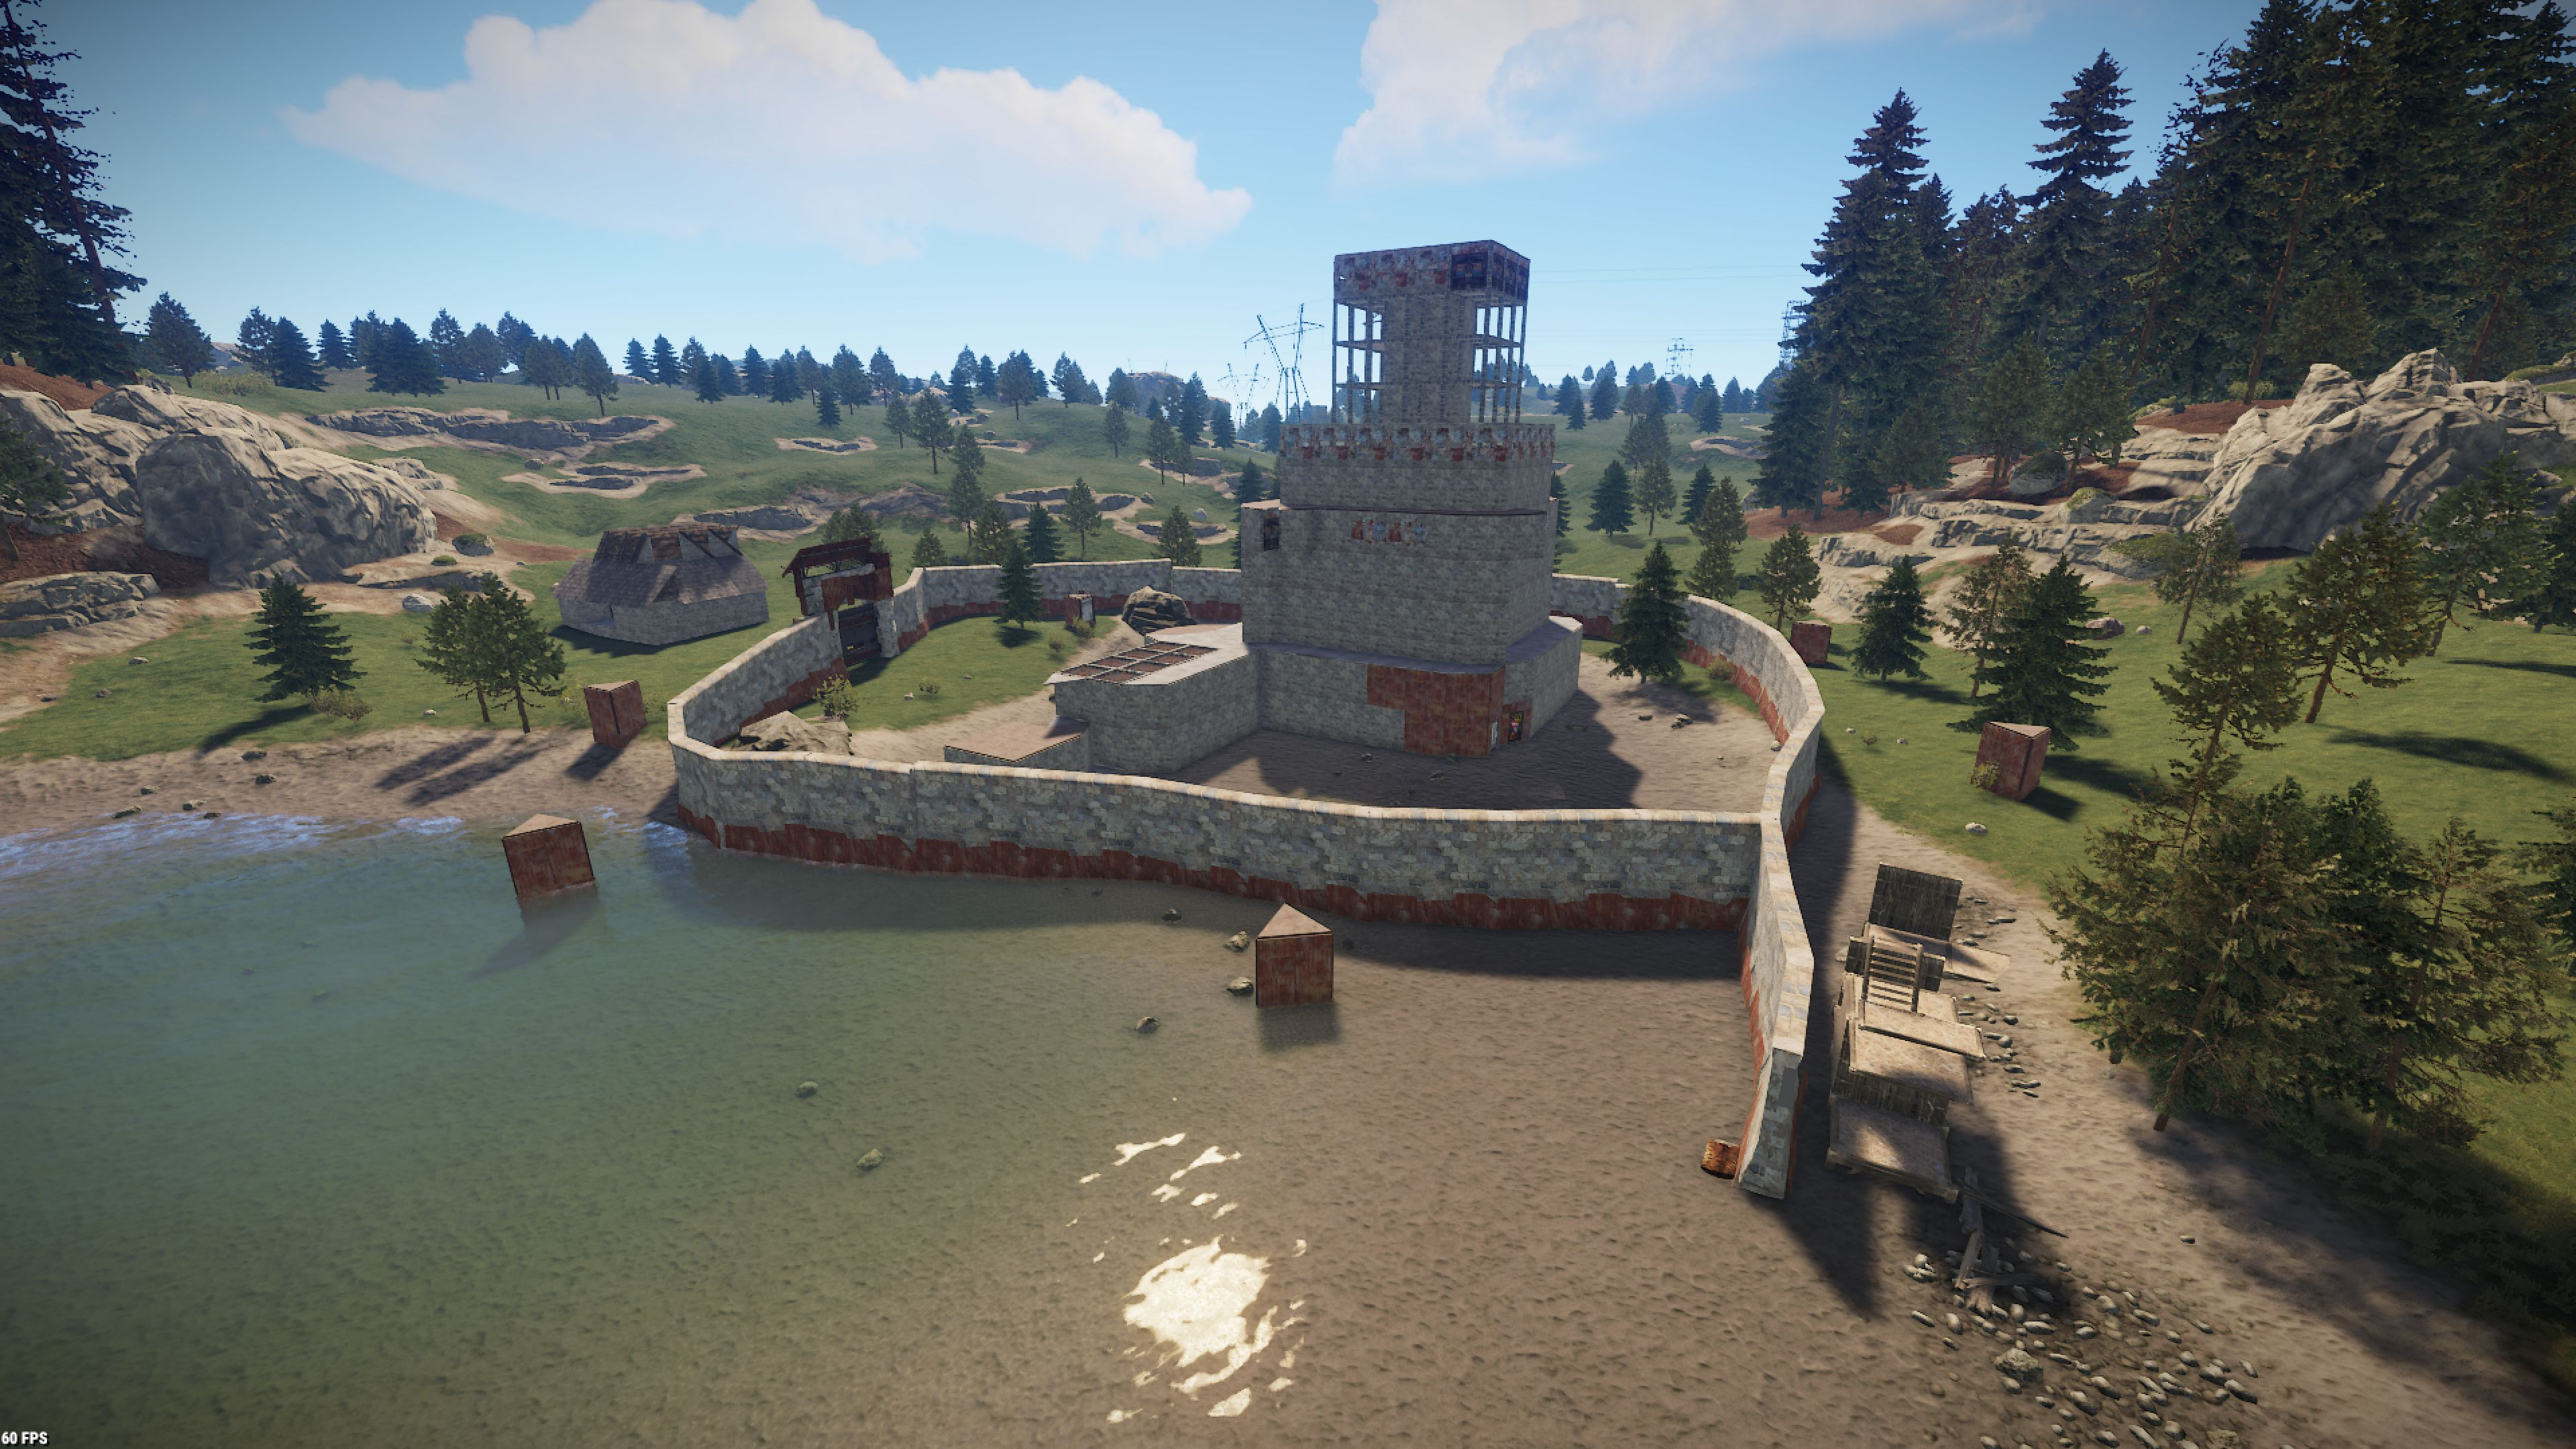 Rust base designs for february 2018 we hope you enjoy browsing corrosion hours february 2018 bases taggedbase designrustsurvival malvernweather Images